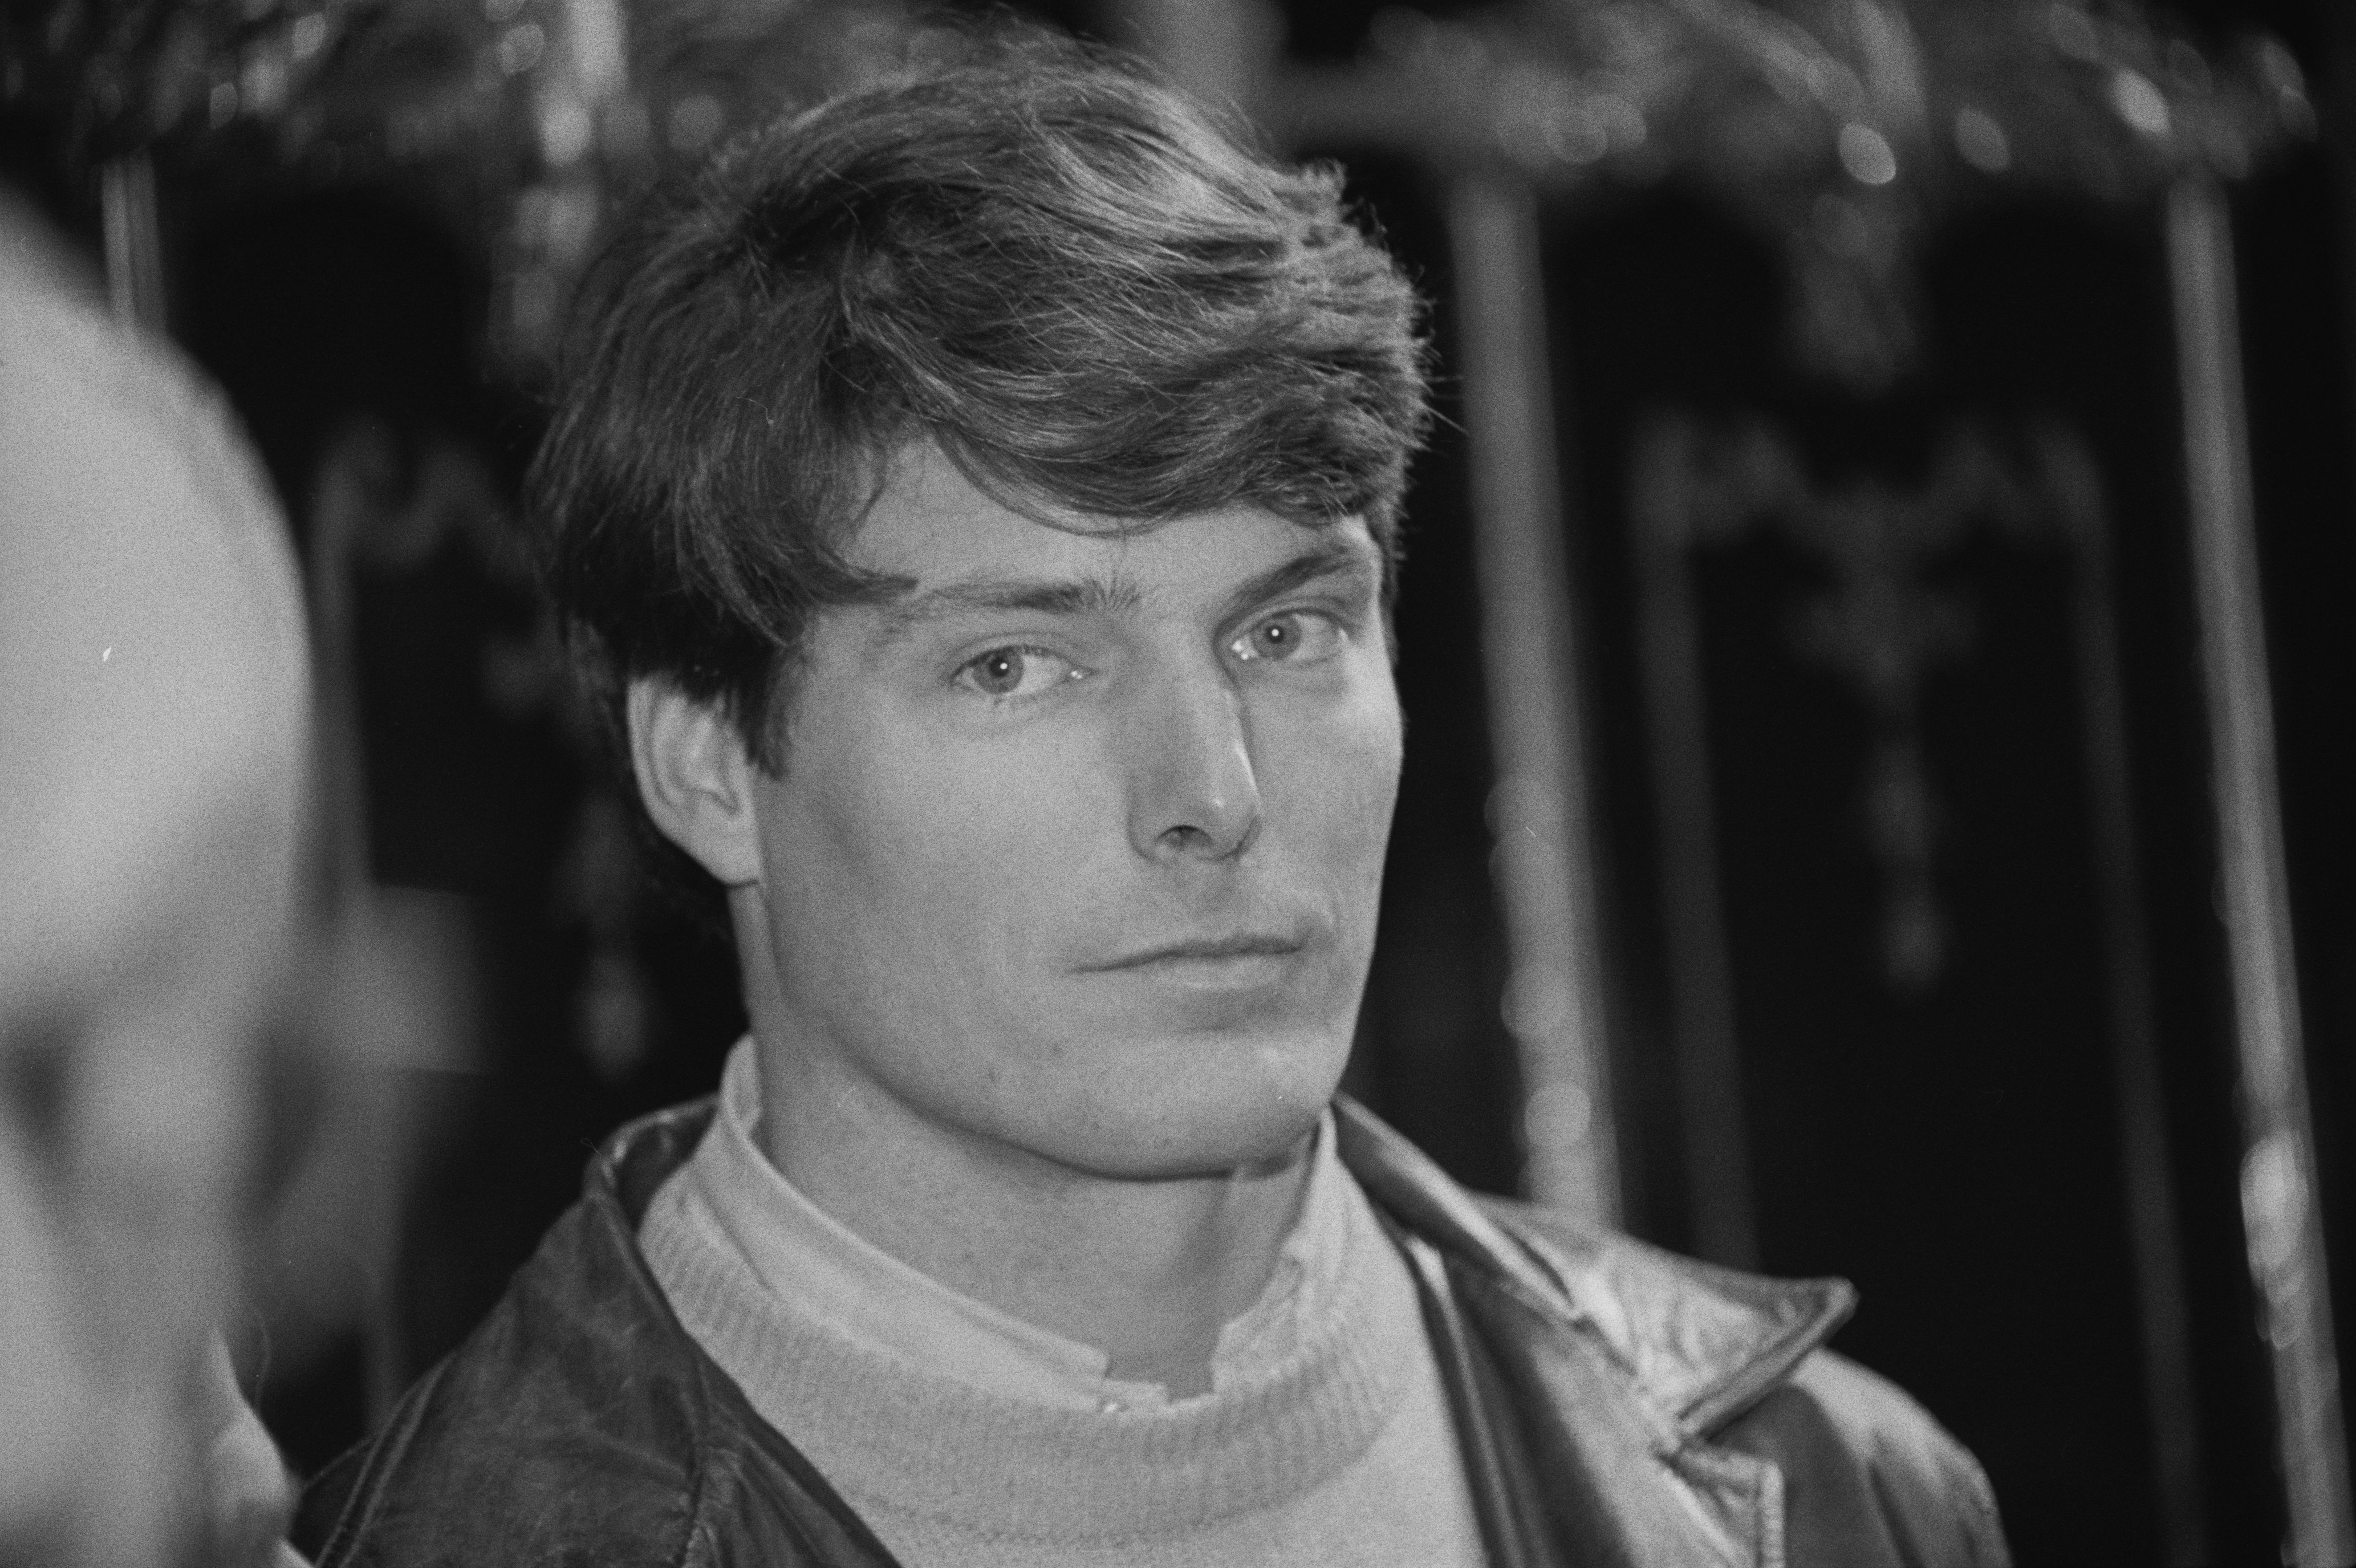 Young Chris Reeve closeup. UK, 1984 | Photo: Getty Images